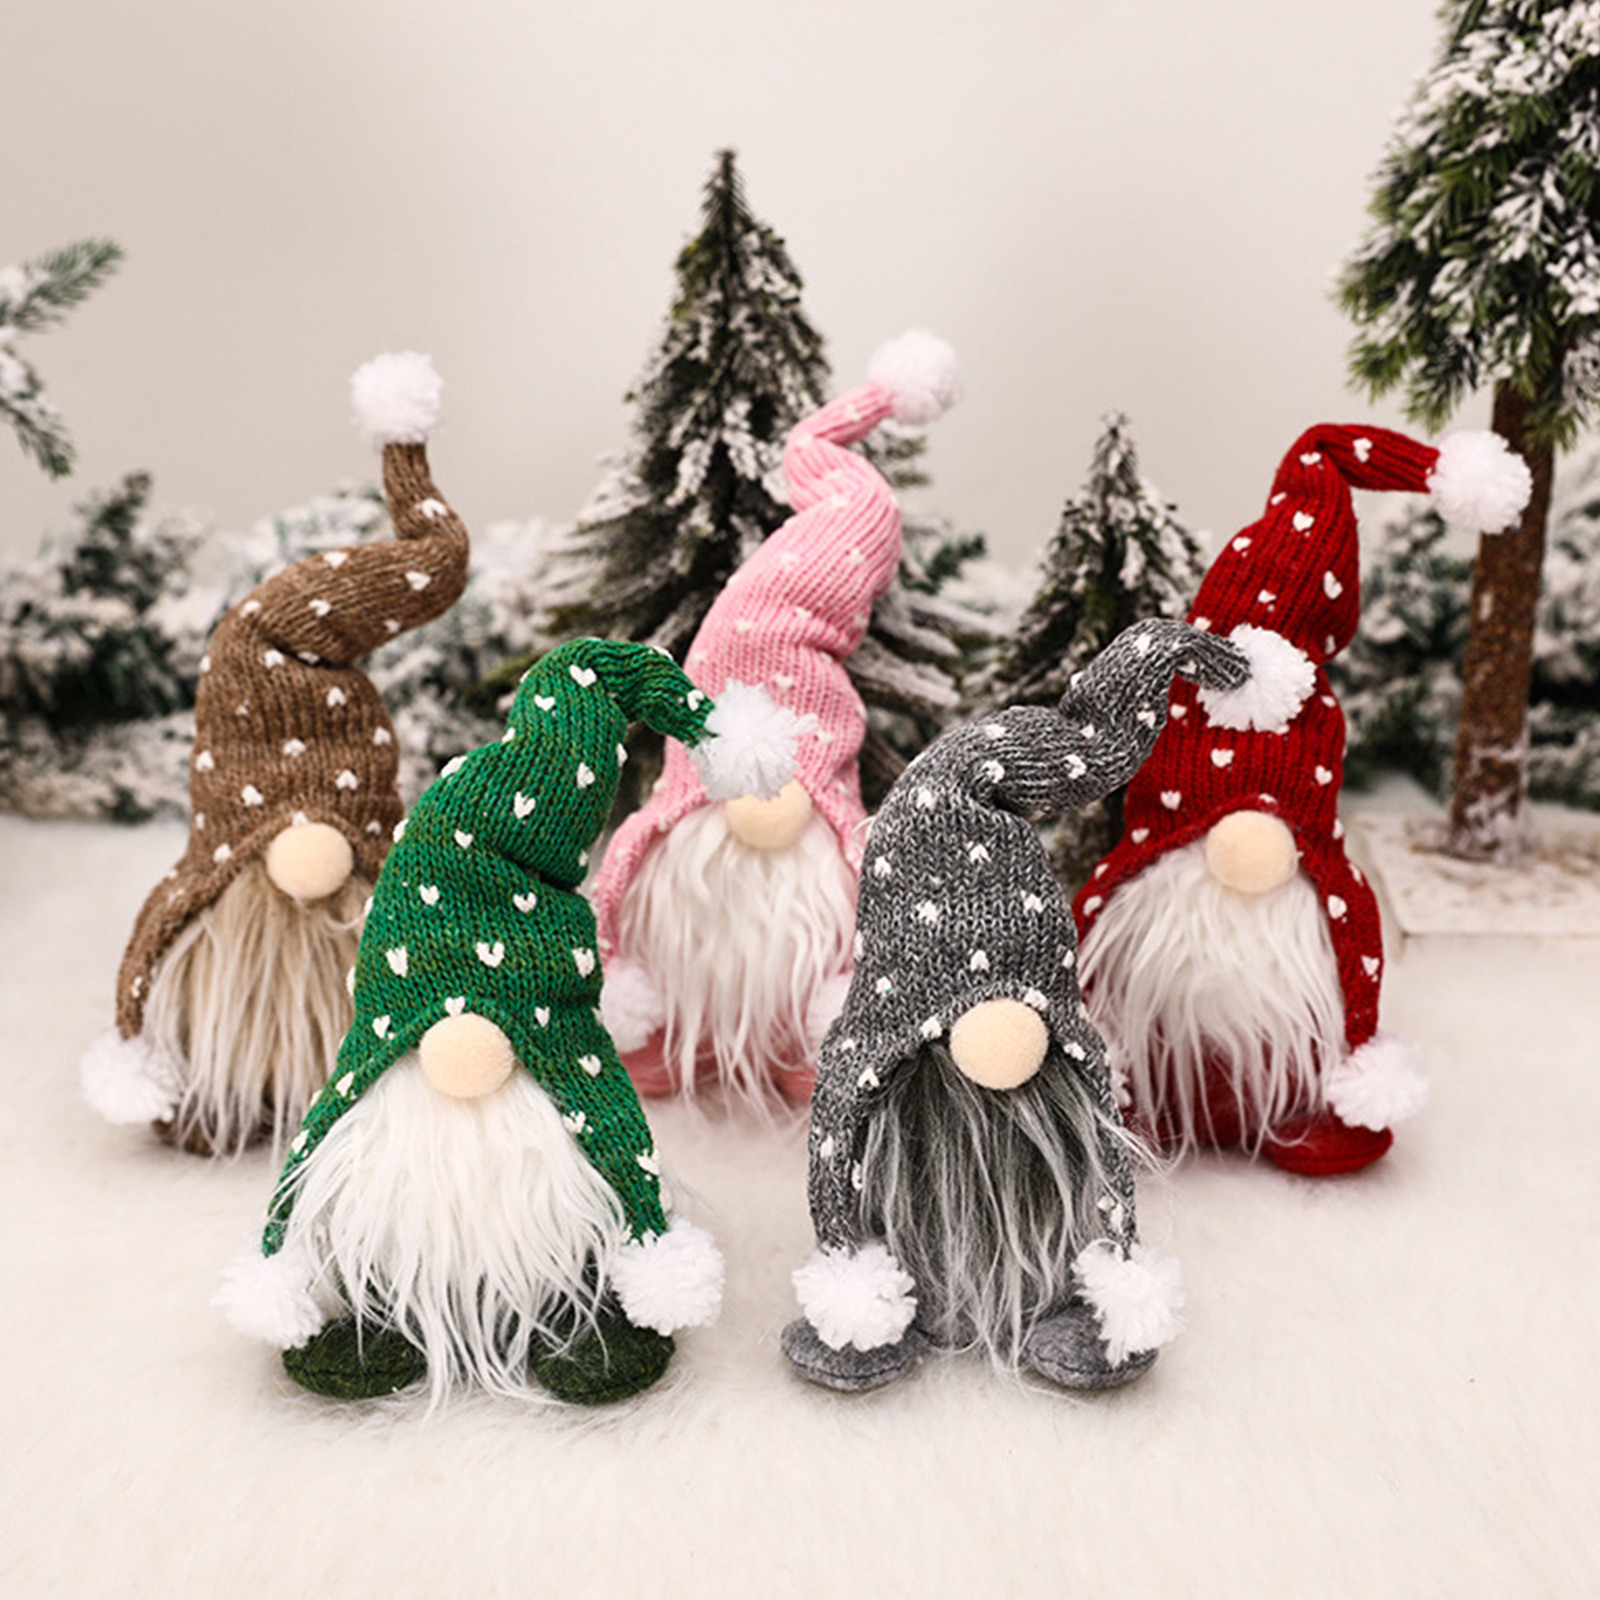 Christmas Gnome Doll Ornaments Standing Plush Dolls Holiday Decoration Tabletop Figurines for Home Windows Gifts